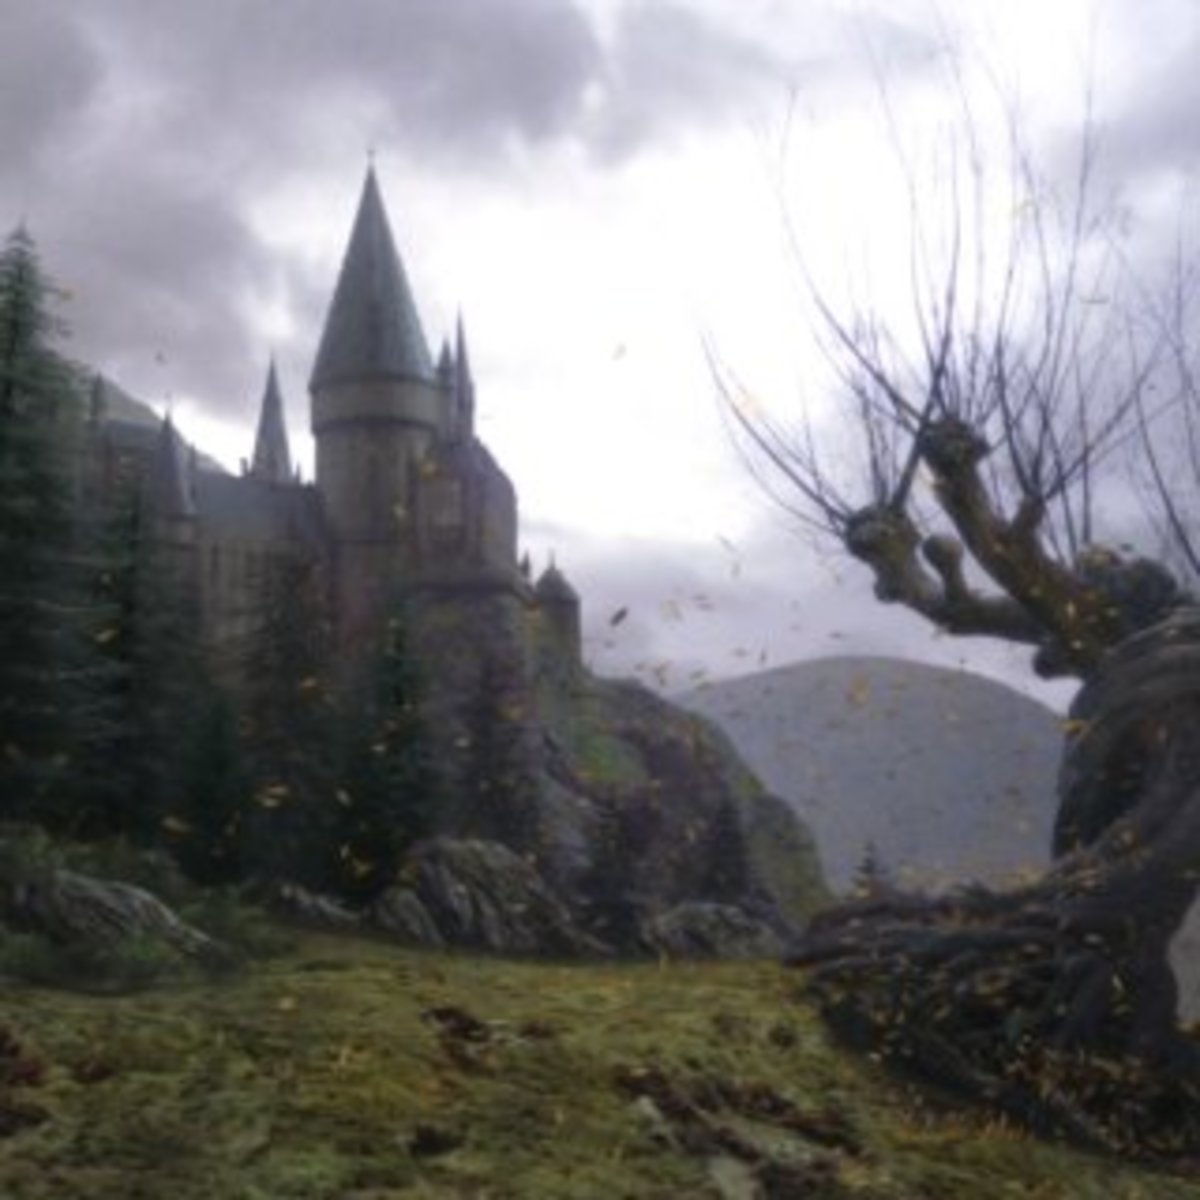 Teaching at Hogwarts School of Witchcraft and Wizardry